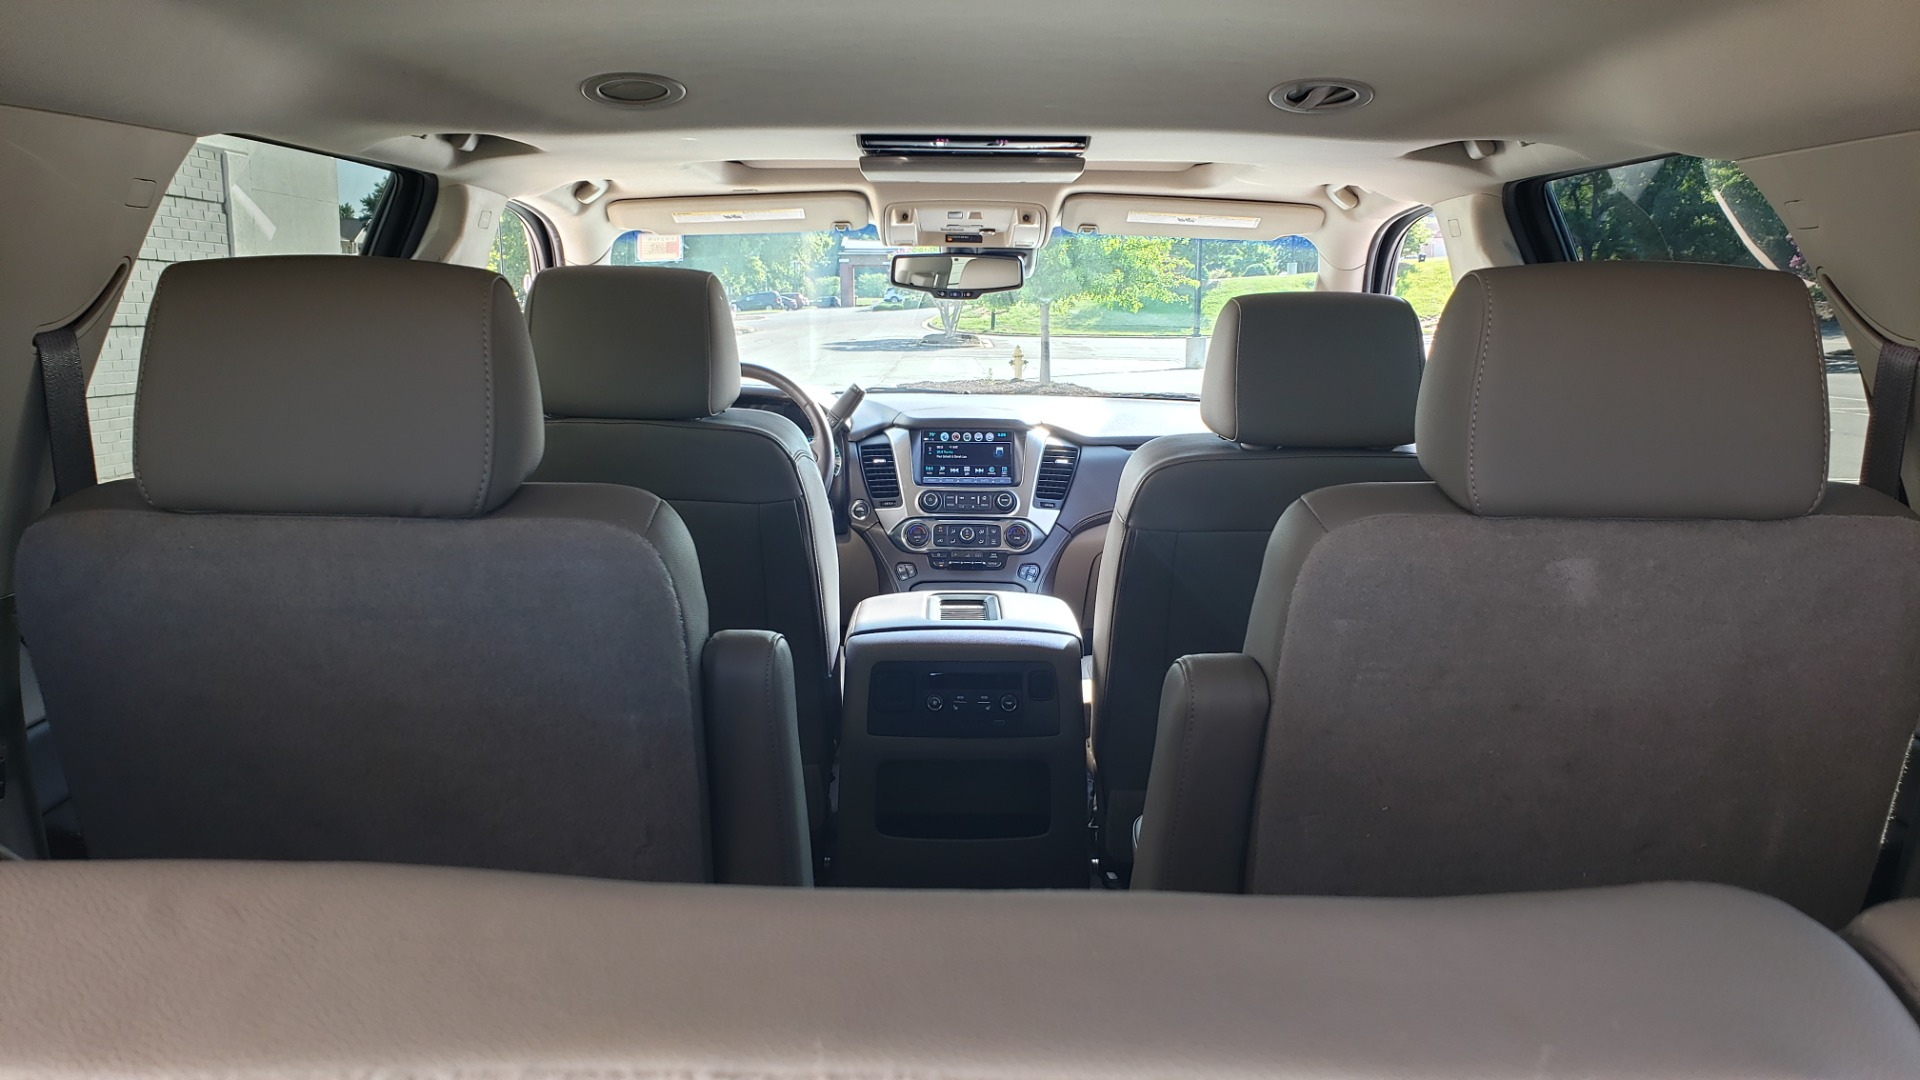 Used 2018 Chevrolet TAHOE PREMIER 4X4 / NAV / BOSE / SUNROOF / ENT SYS / 3-ROW / REARVIEW for sale $55,995 at Formula Imports in Charlotte NC 28227 21